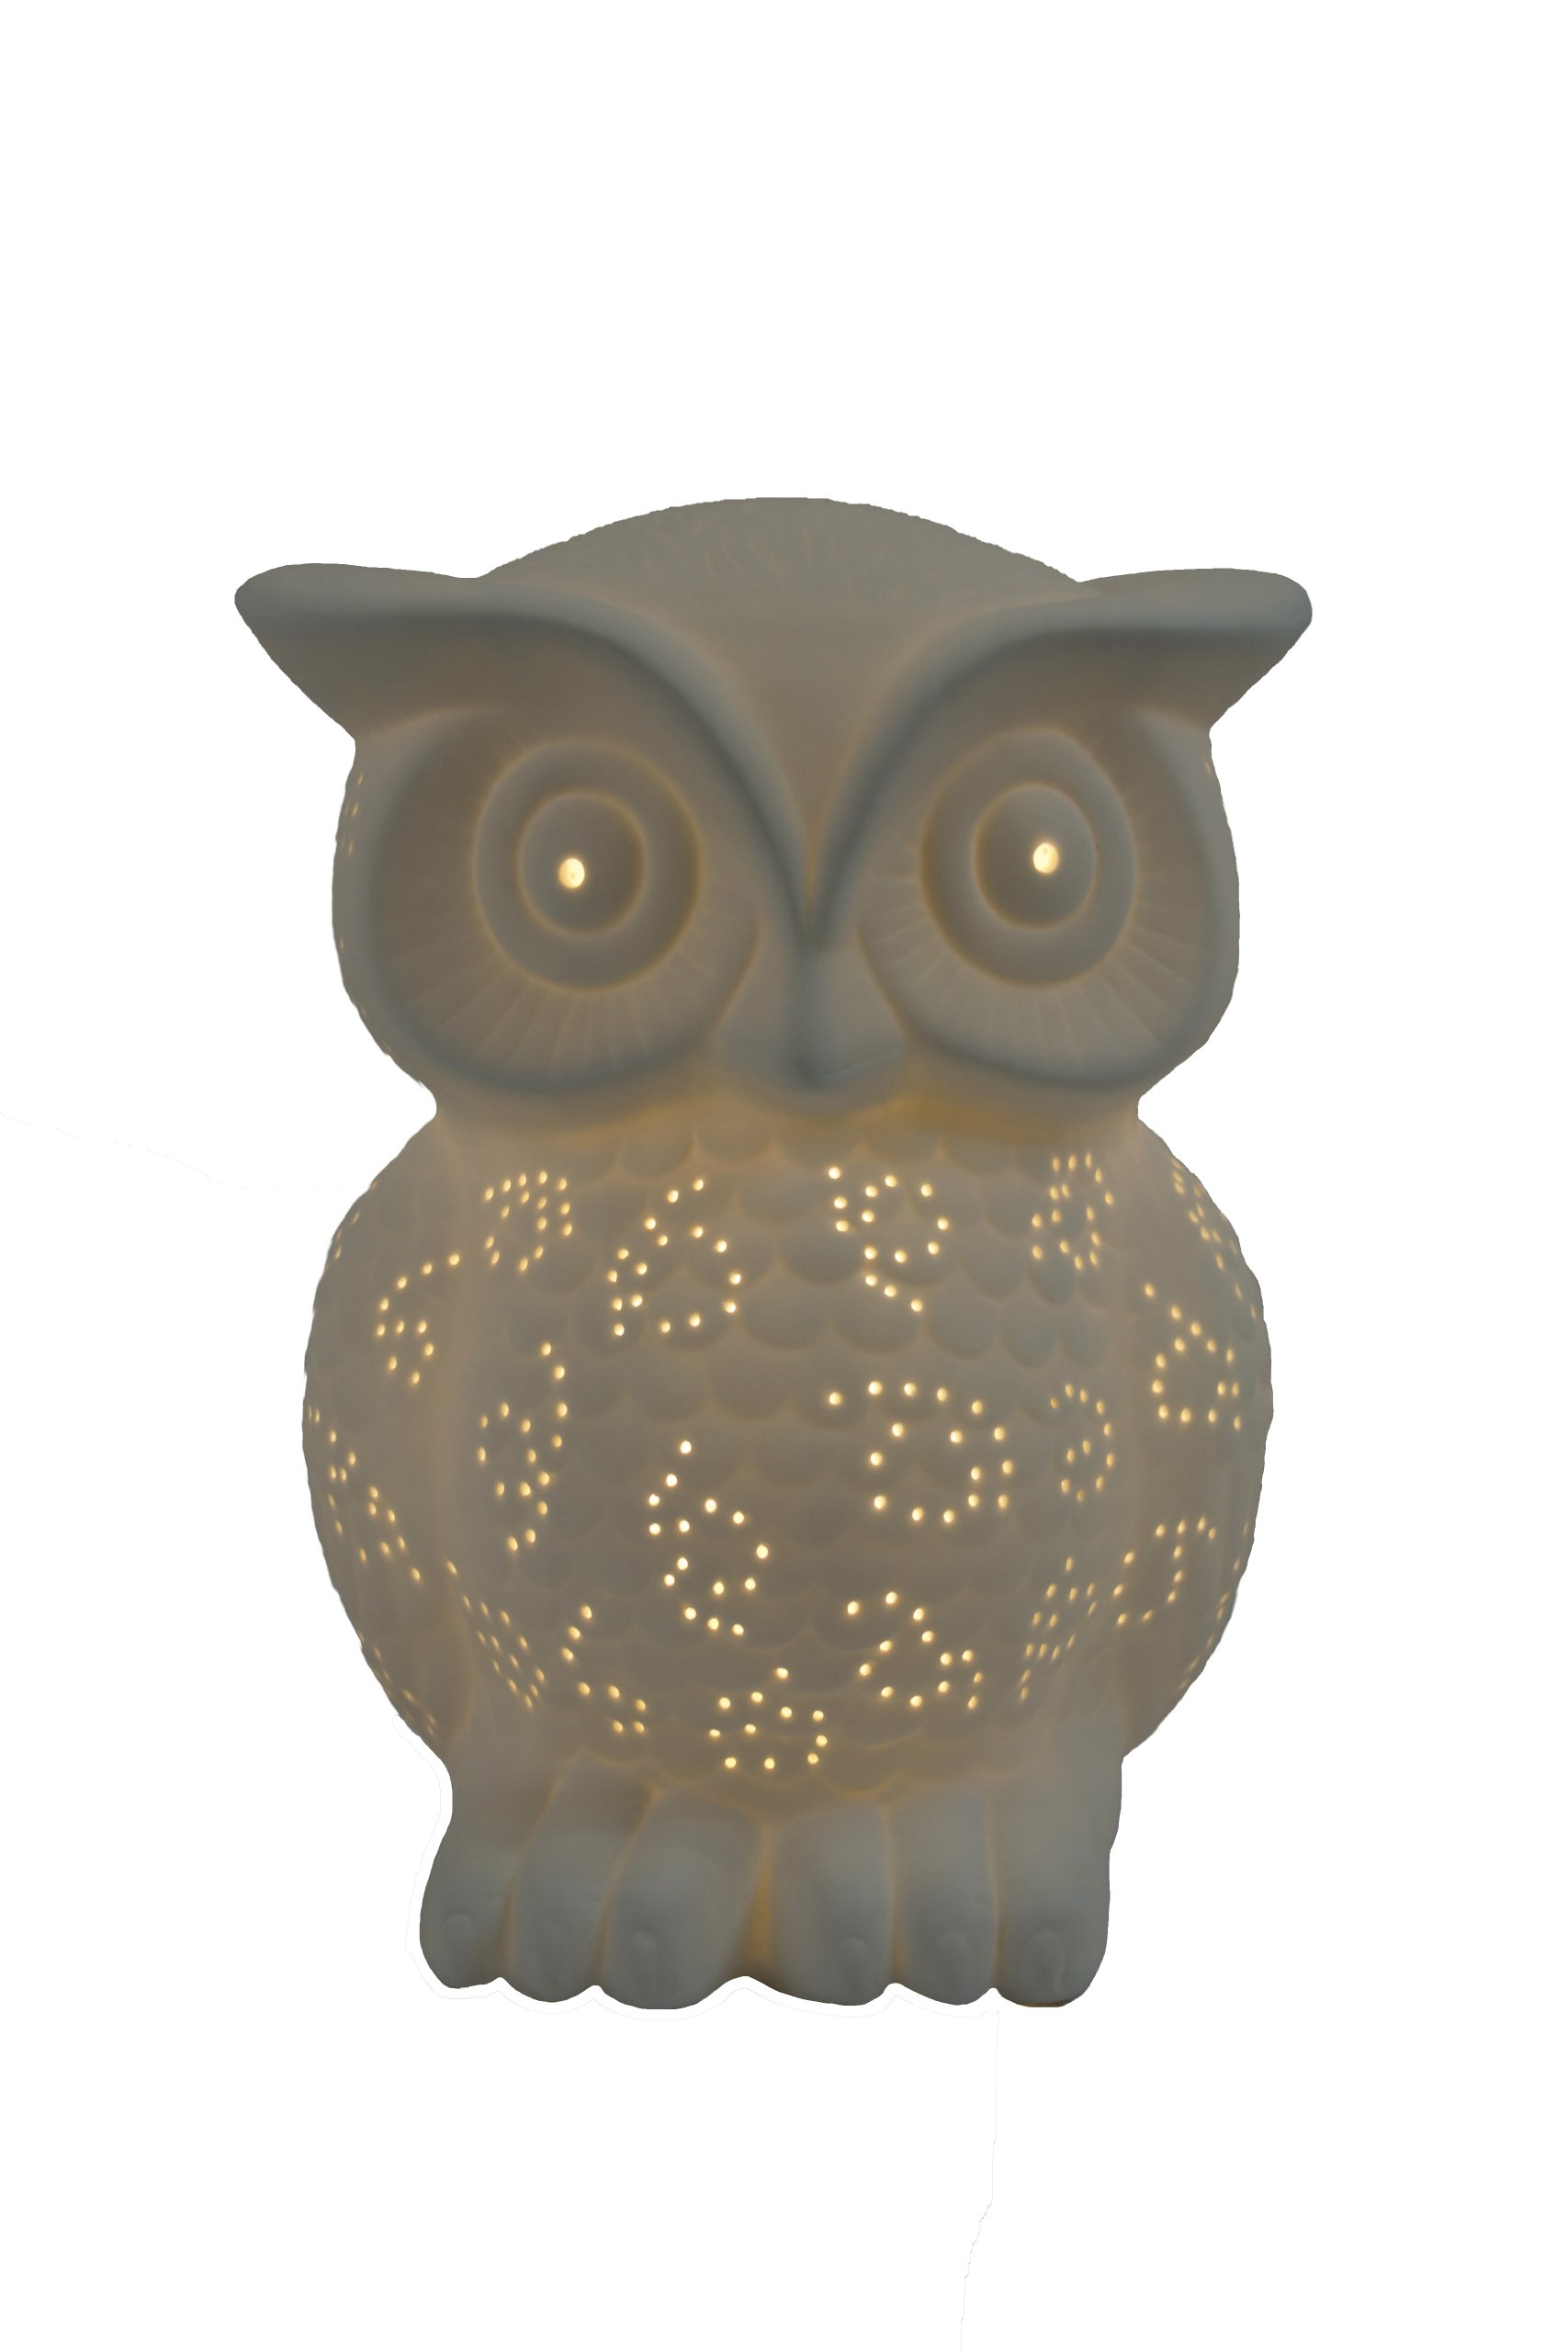 Simple Designs LT3027-WHT White Porcelain Animal Shaped Table Lamp, Wise Owl